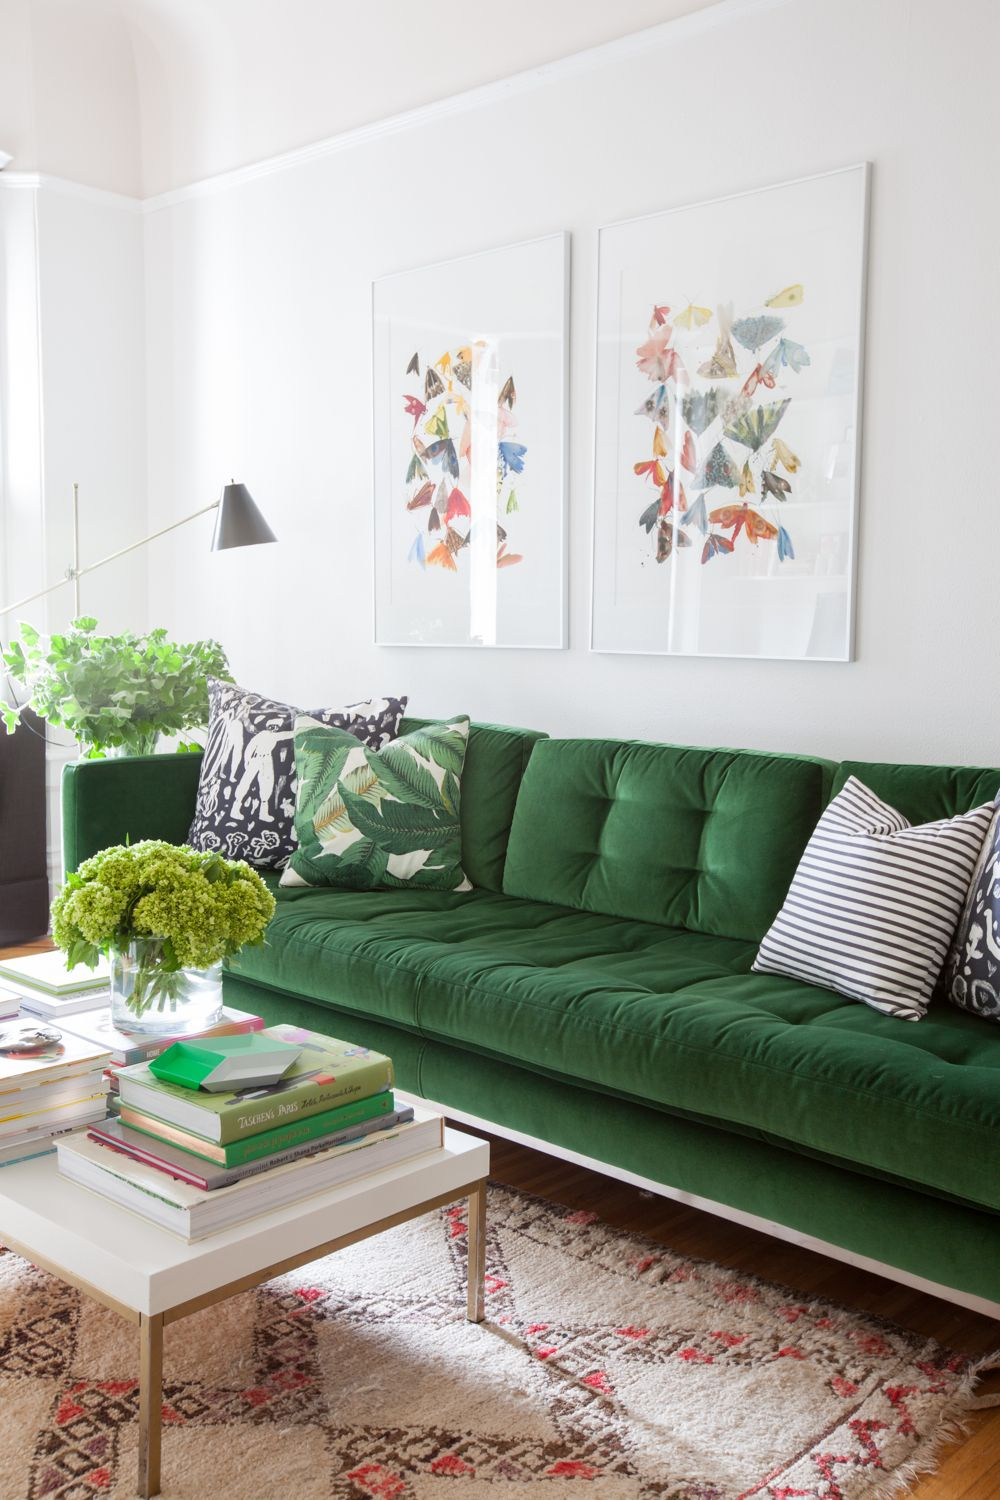 San Francisco House Tour | Pinterest | San francisco houses, House ...